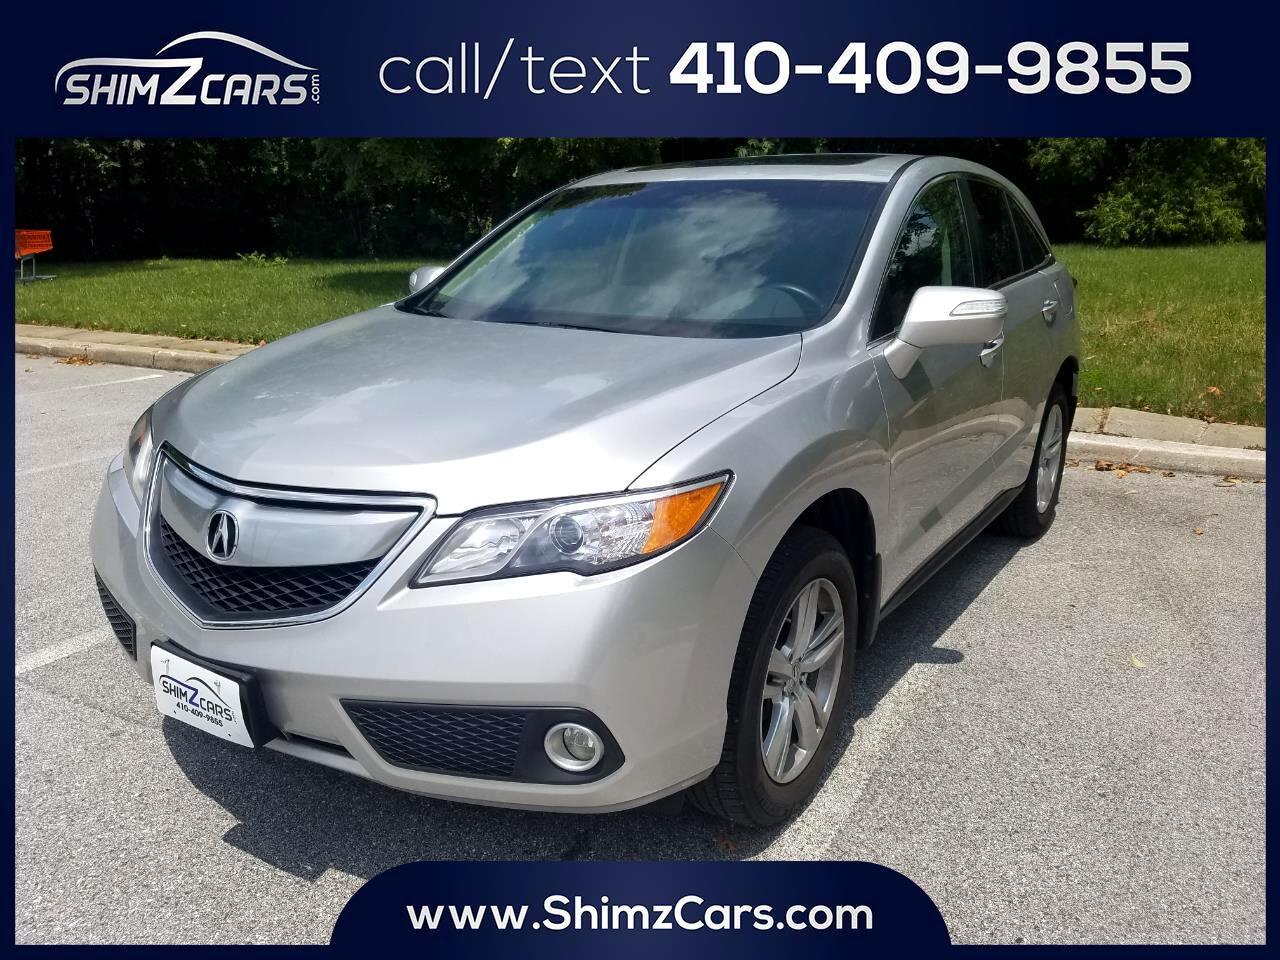 Used Cars Baltimore >> Used Cars For Sale Baltimore Md 21209 Shimz Cars